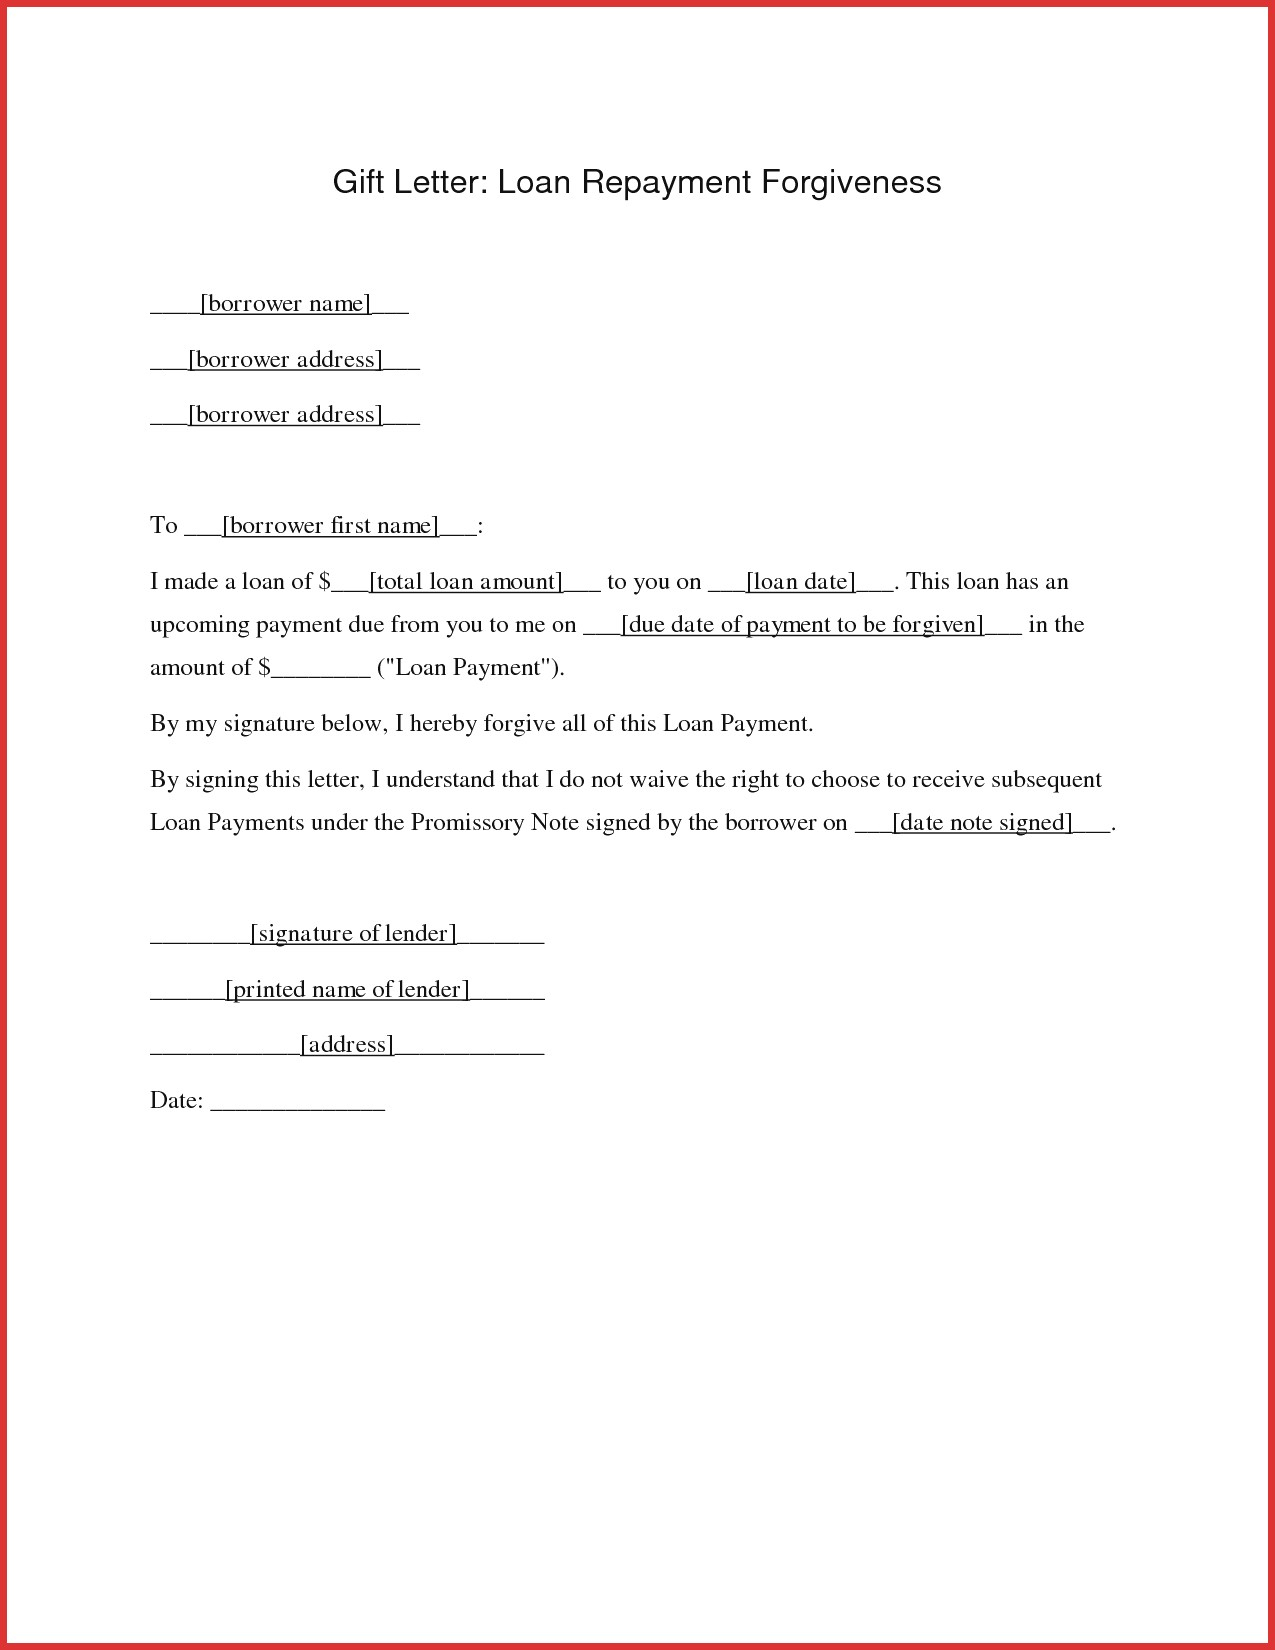 loan-payoff-letter-template-14  Day Payoff Letters Templates on free debt, sample debt, google spreadsheet debt, track debt, statement request,